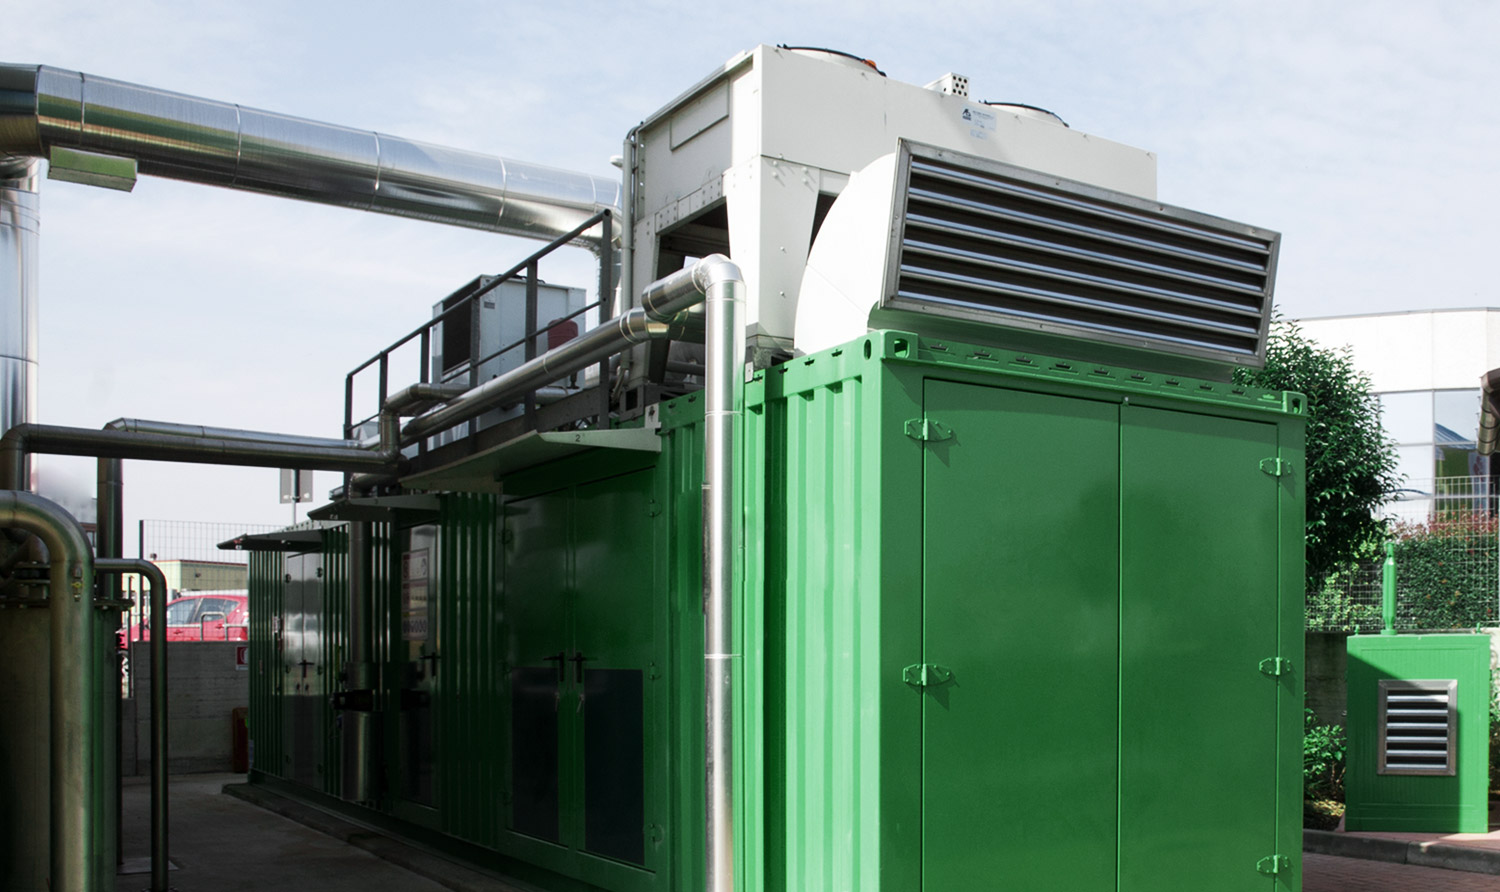 CHP – Cogeneration of Heat and Power